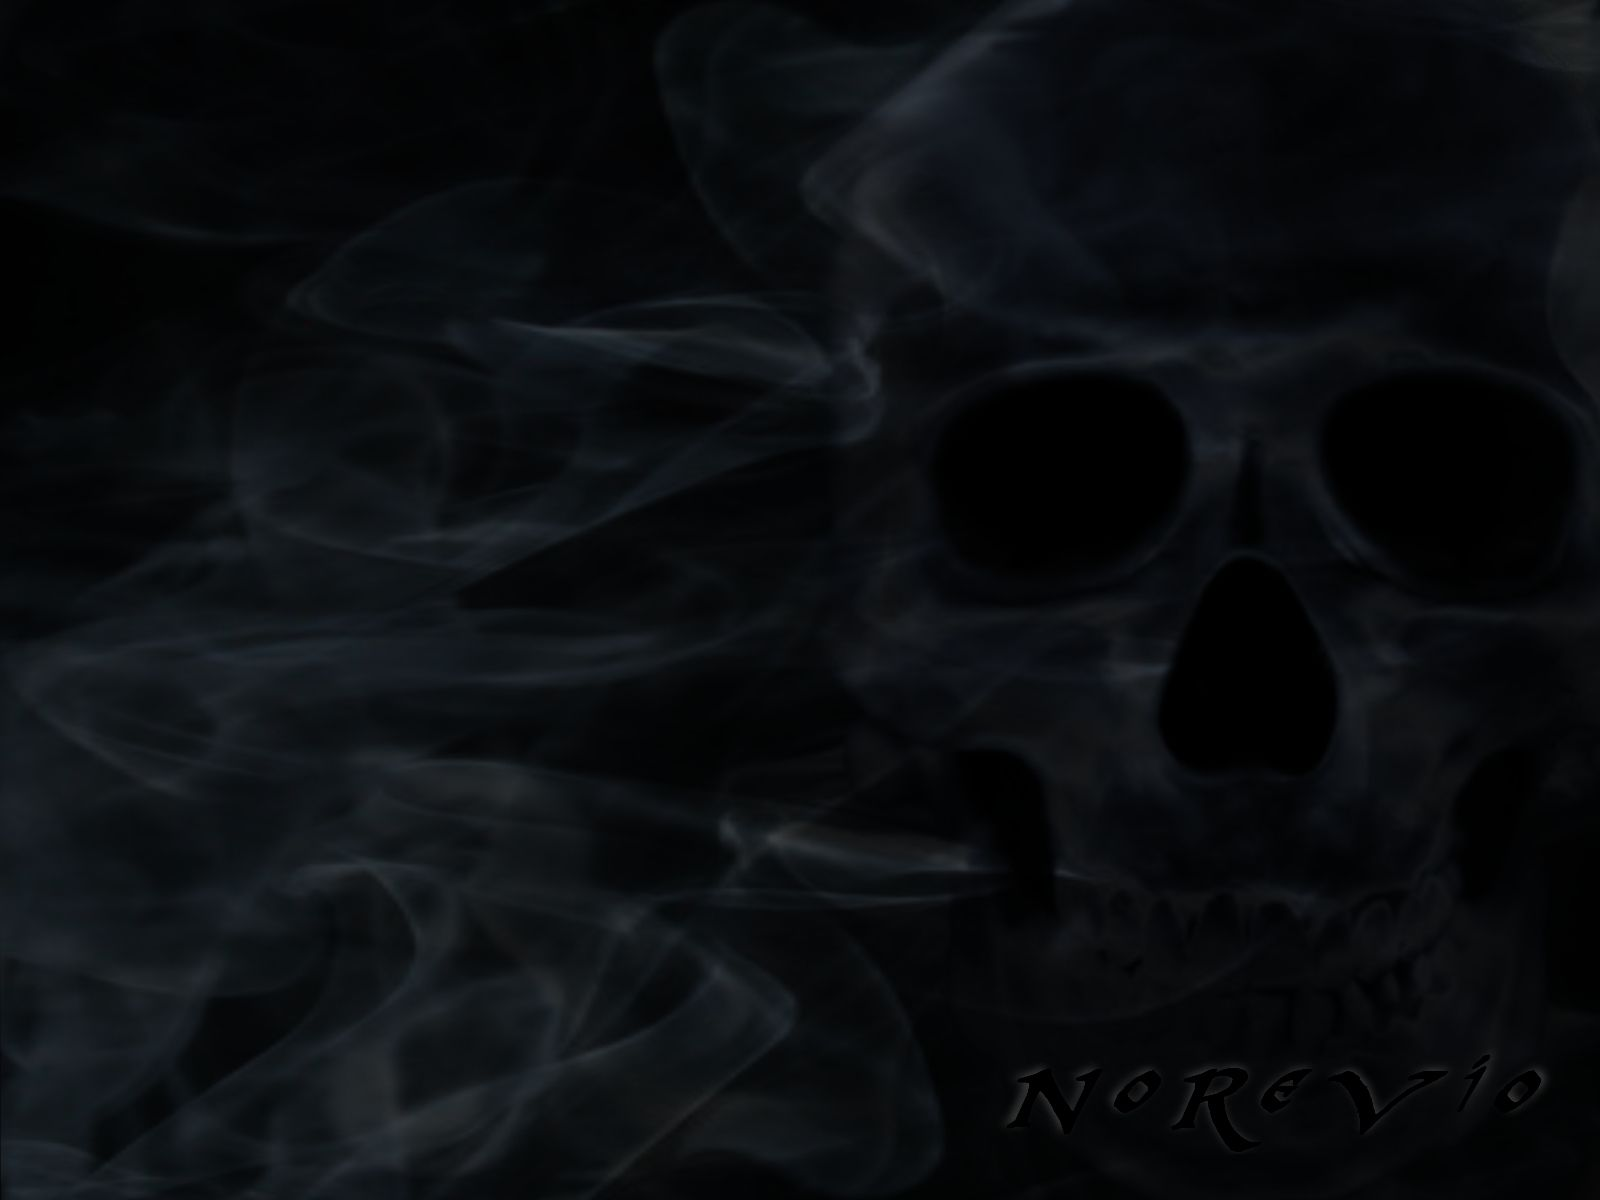 Horror Hd Wallpapers 1366x768 Smoking Skull Wallpapers Group 47